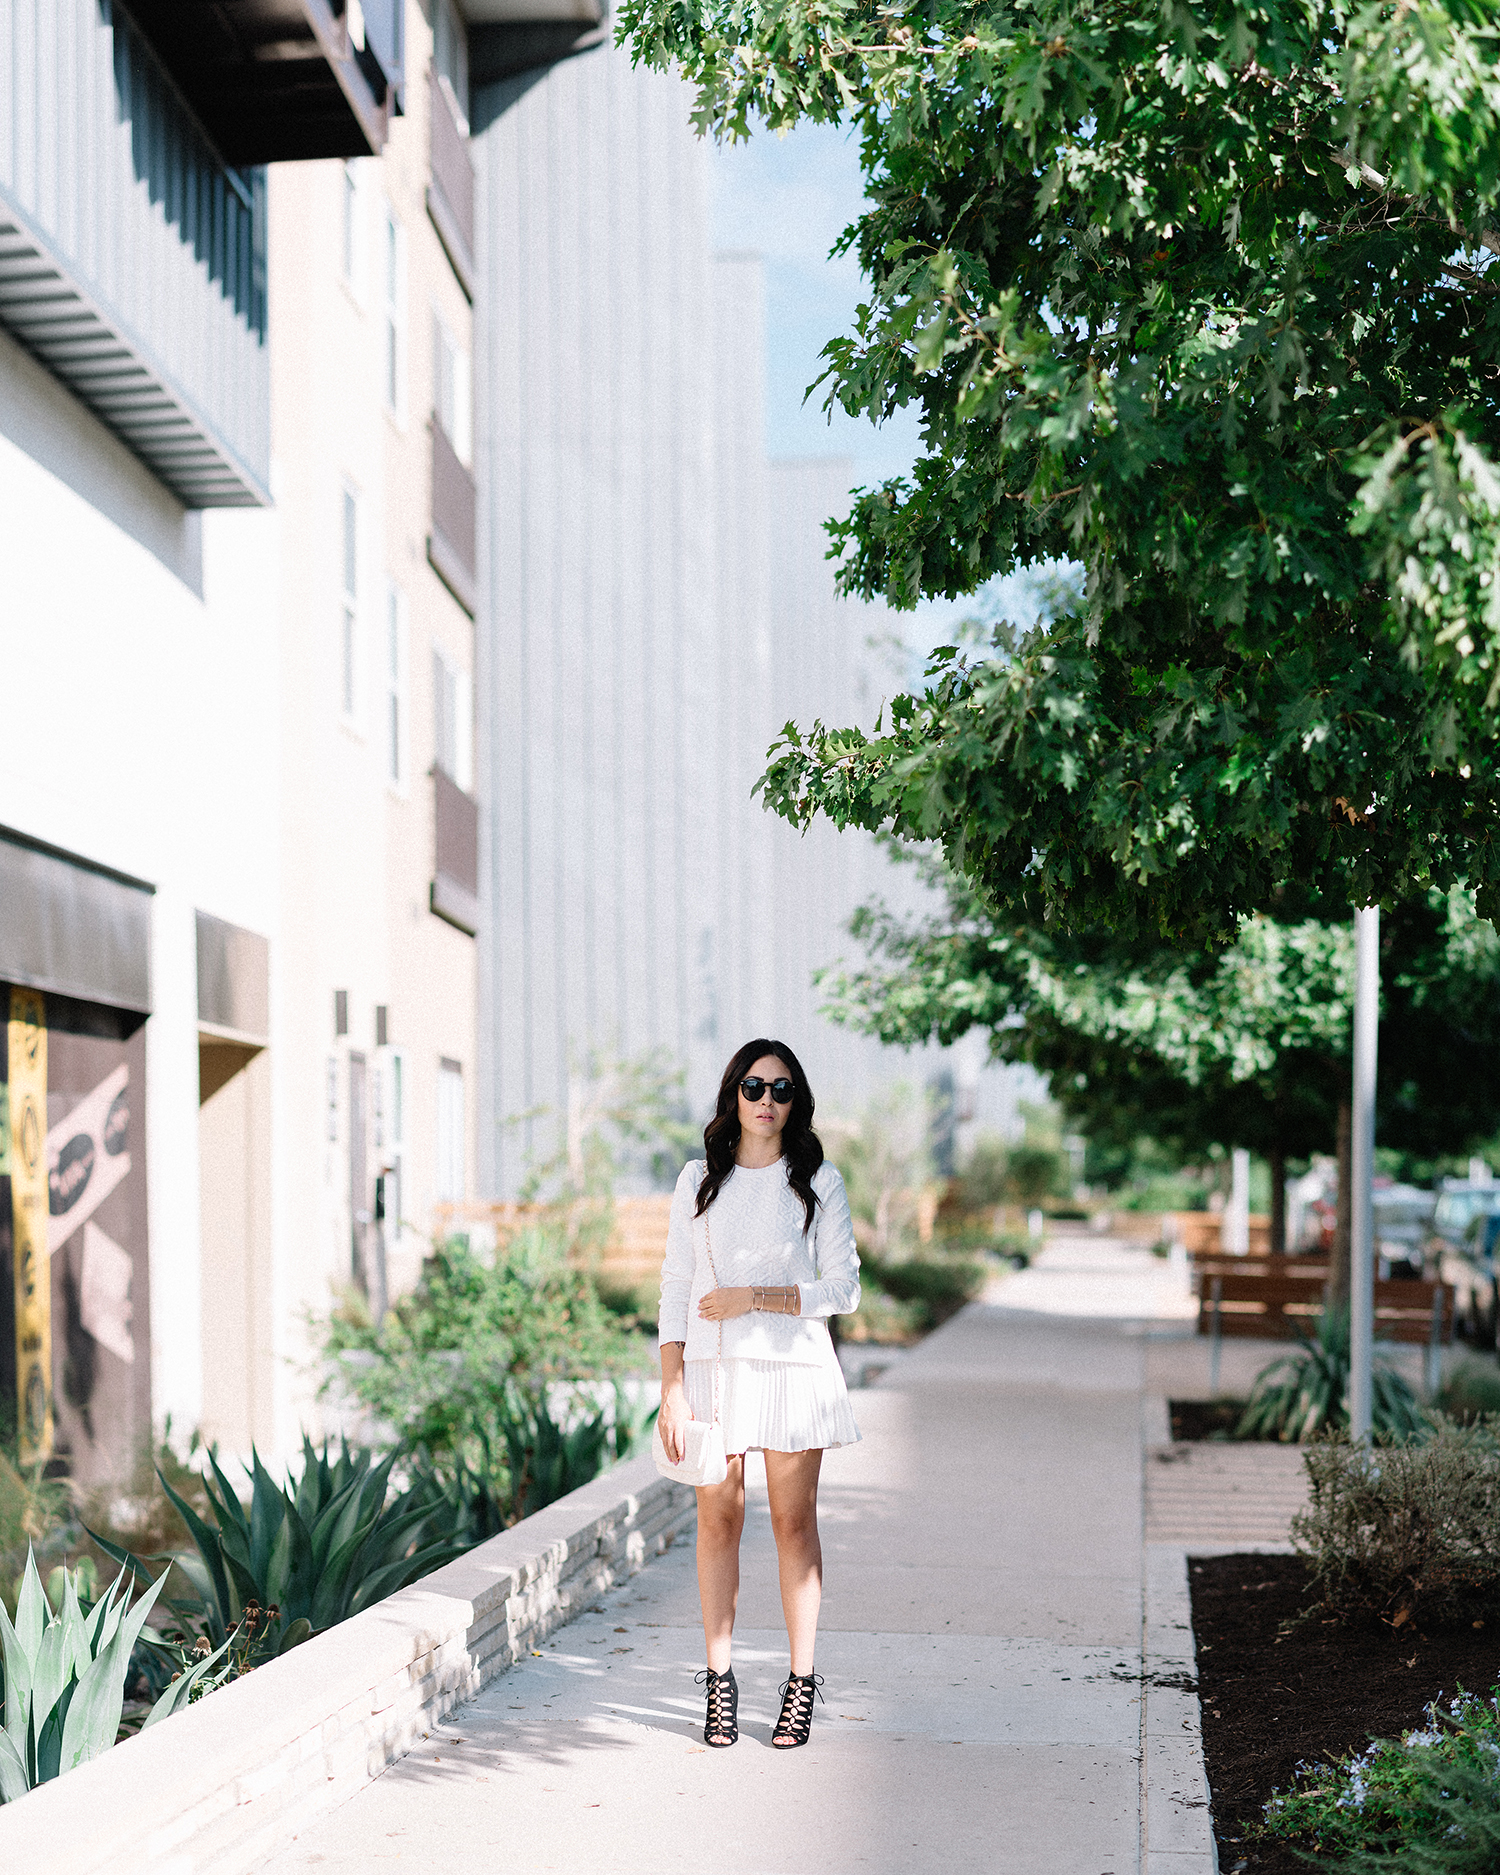 FIXIN-TO-THRILL-CARLOS-BARRON-PHOTOGRAPHY-FALL-NUDE-OCTOBER-CHIC-ATX-AUSTIN-STYLE-BLOG-BLACK-WHITE-LACE-SANDALS-TRENDS-FW15-TRENDY-CHIC-GLAM-FASHION-TEXAS-12